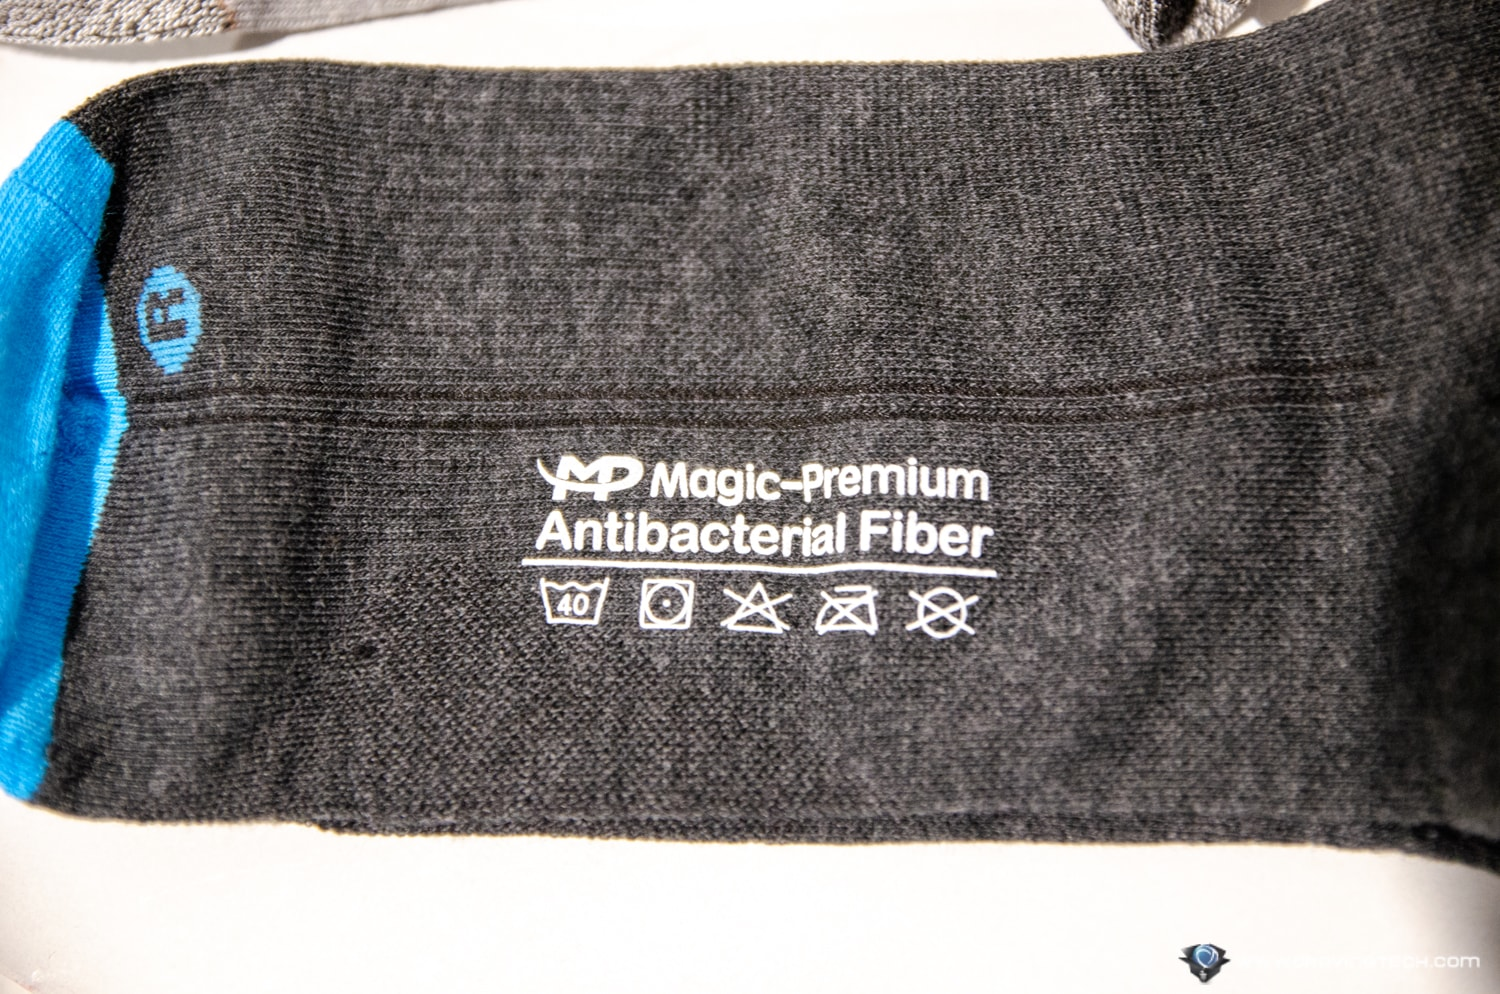 MP Magic Socks Review